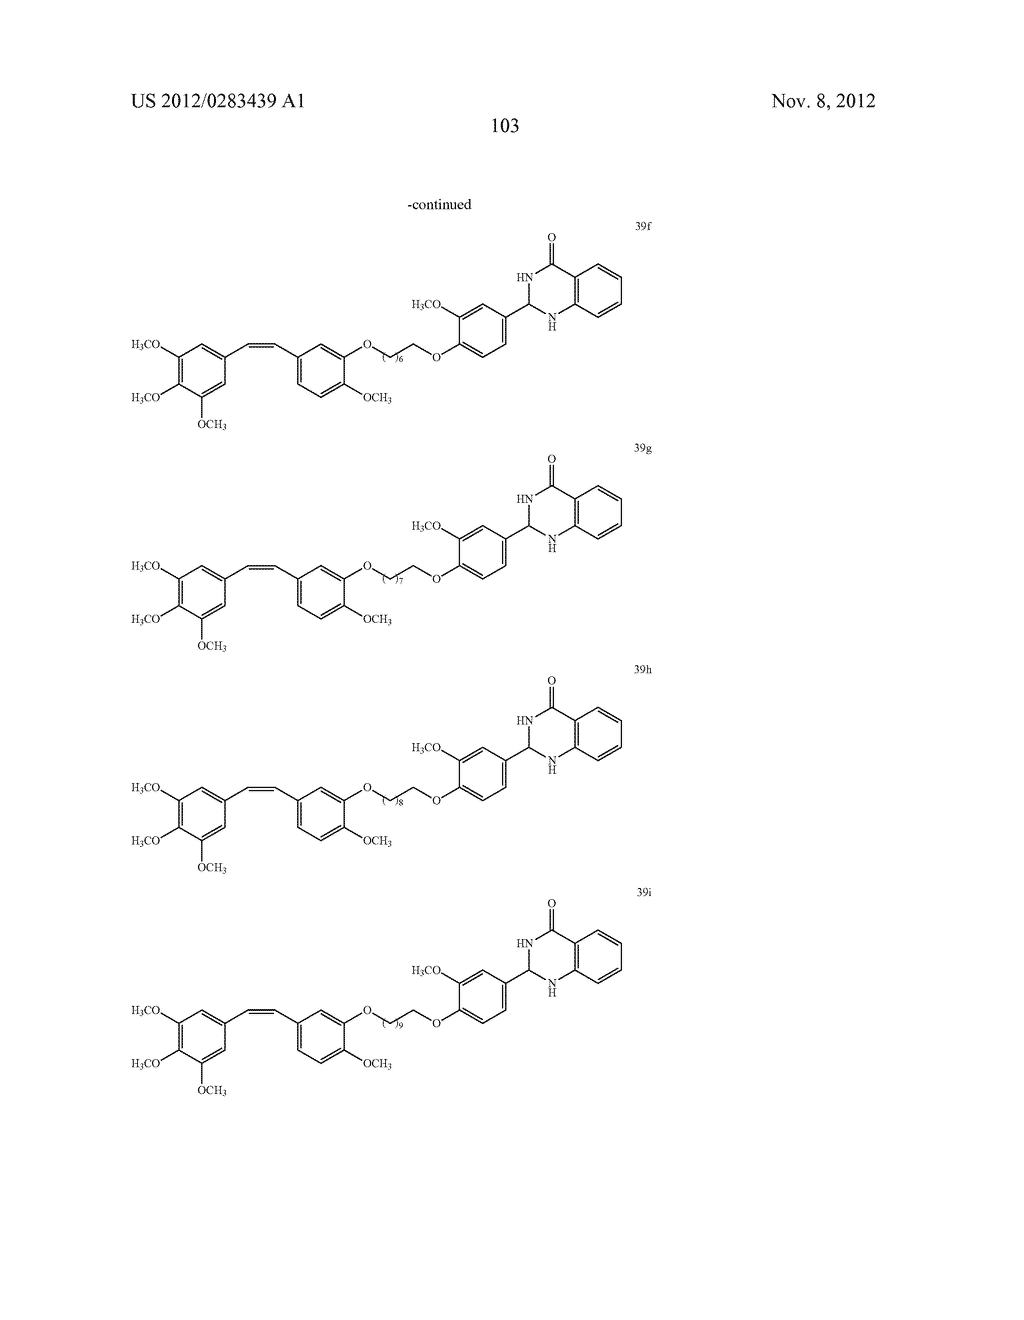 ISOXAZOLE/ISOXAZOLINE/COMBRETASTATIN LINKED DIHYDROQUINAZOLINONE HYBRIDS     AS POTENTIAL ANTICANCER AGENTS AND PROCESS FOR THE PREPARATION THEREOF - diagram, schematic, and image 105